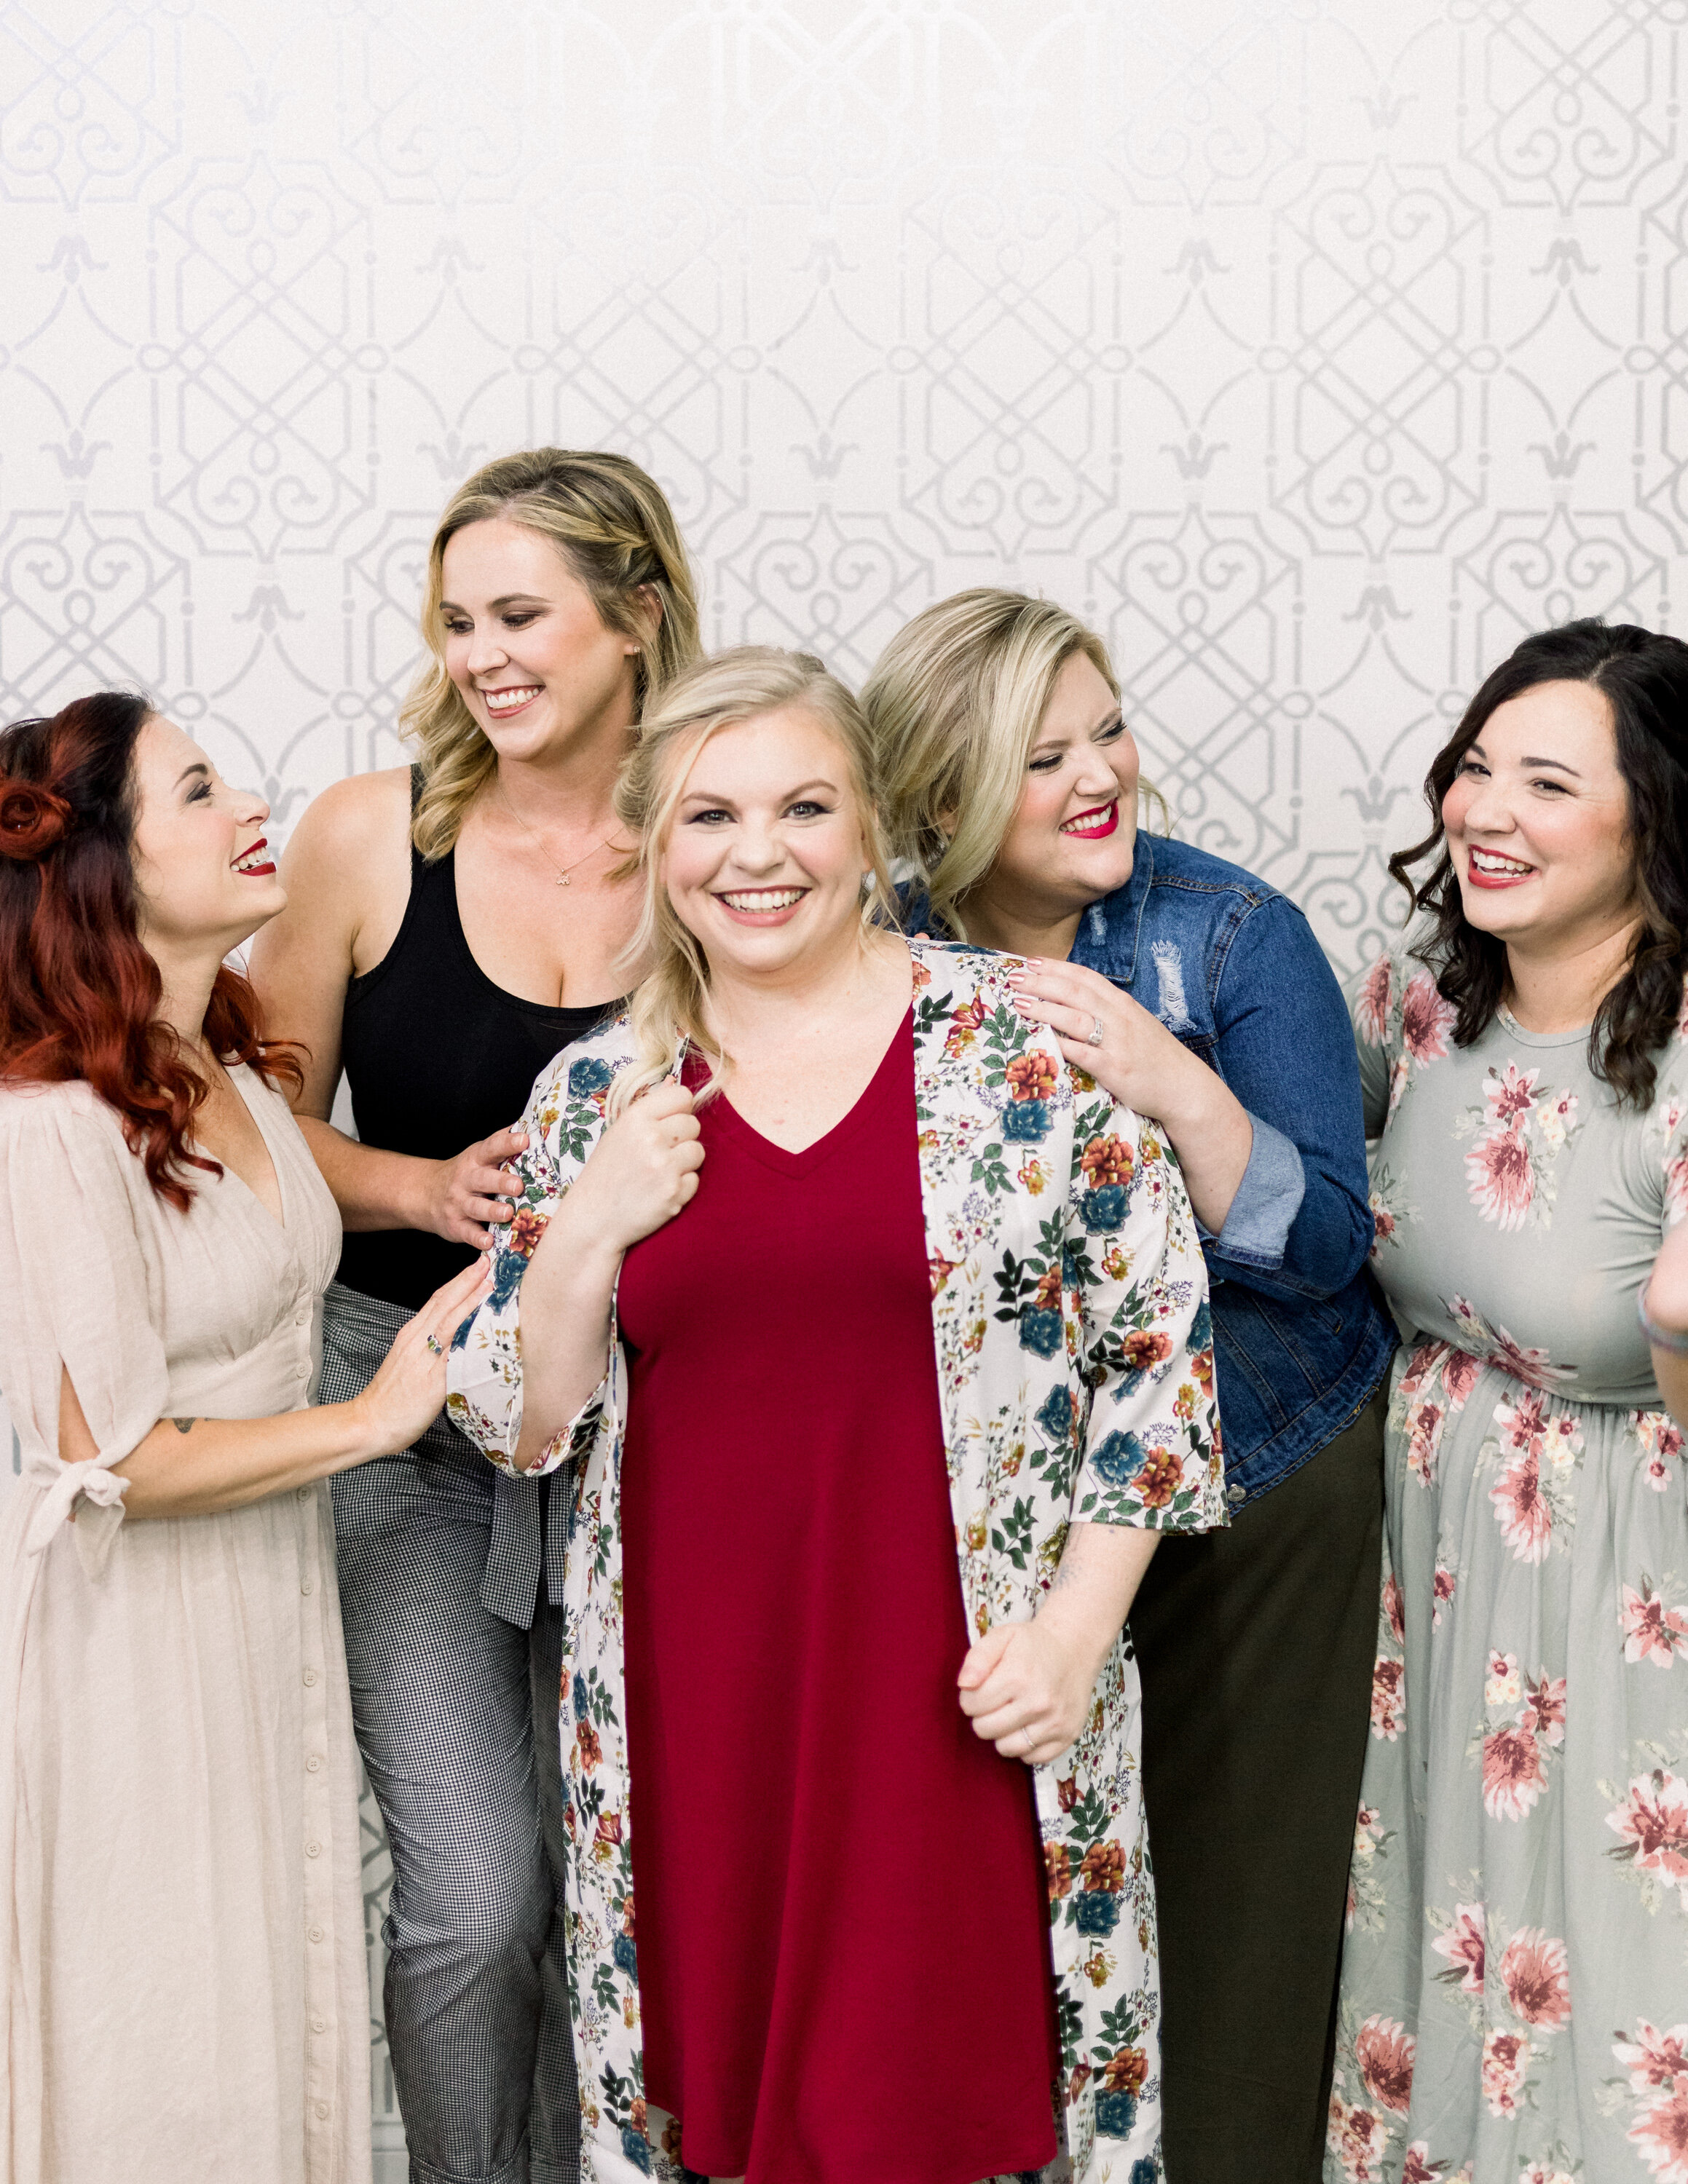 5 women - from differing perspectives within infertility and loss communities - were given a day of pampering by The Color Room in Wentzville, MO. Three of these women - Justine, Katie, and Jen - will be featured this month for Pregnancy and Infant Loss Awareness Month.